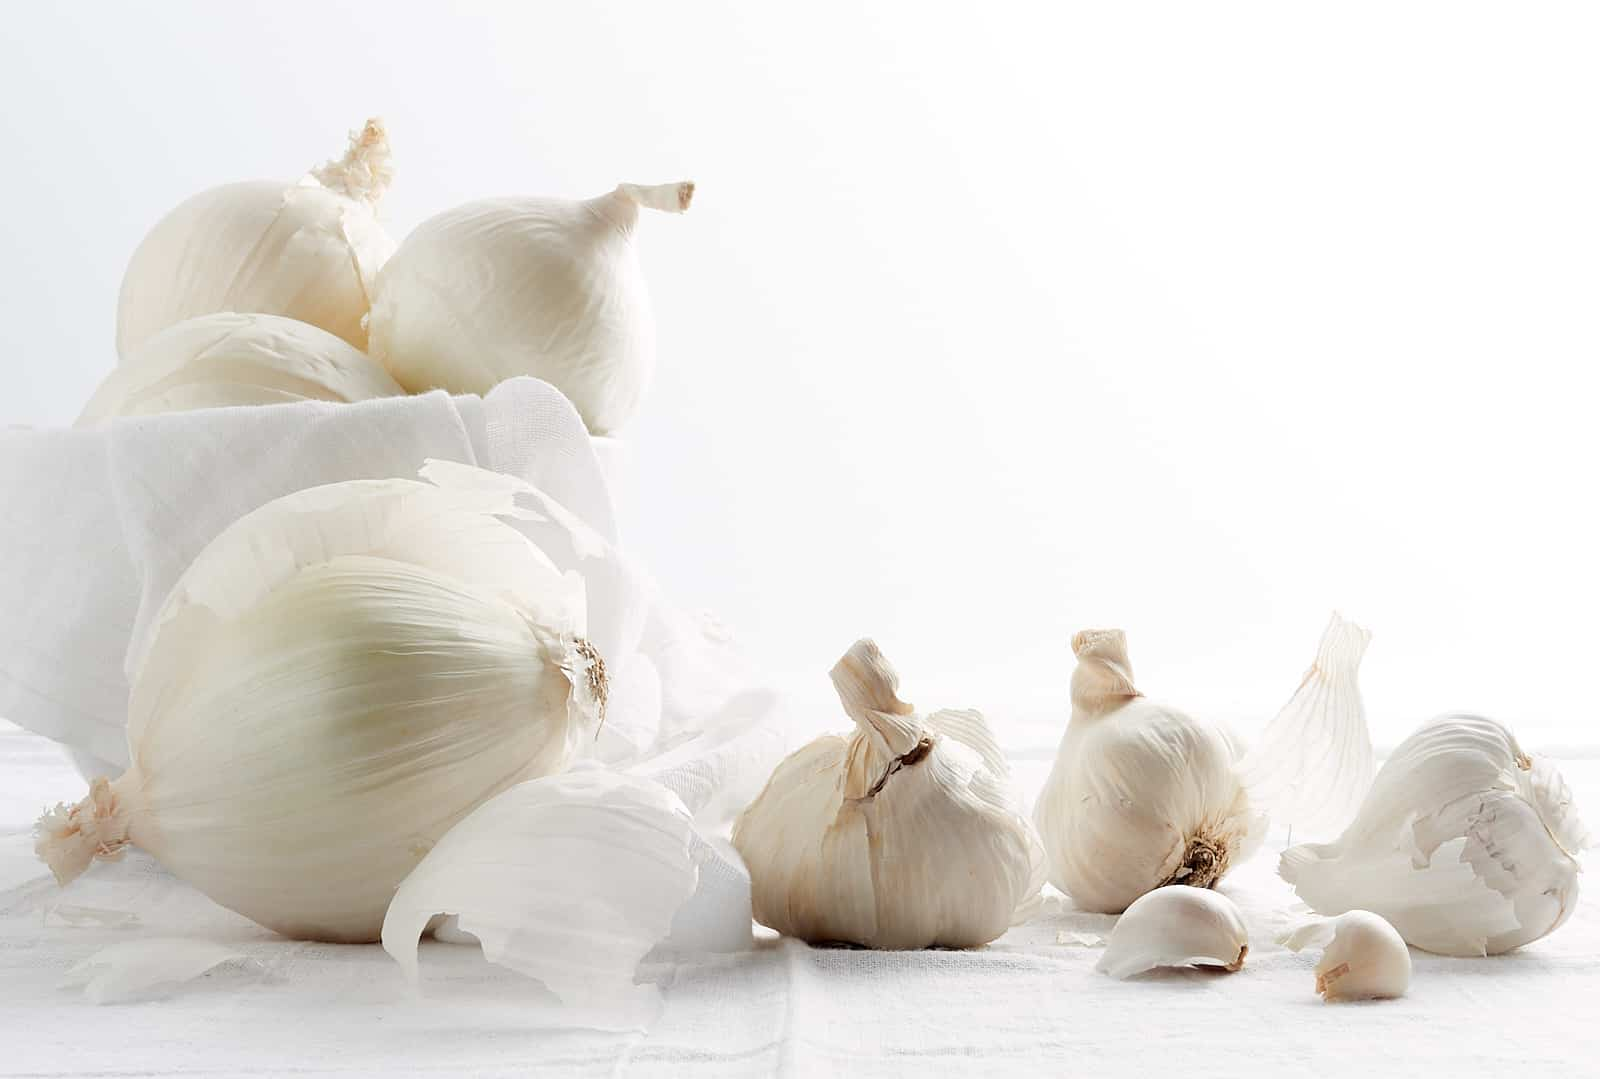 Onions and Garlic on a white background.